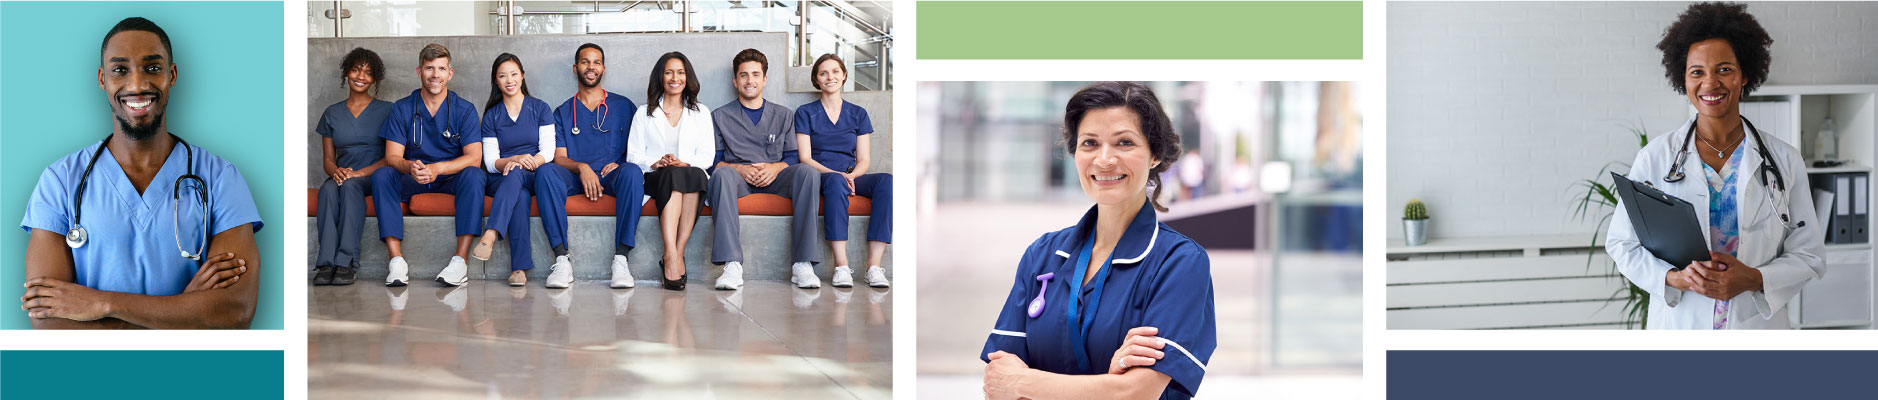 photo collage of doctors and nurses